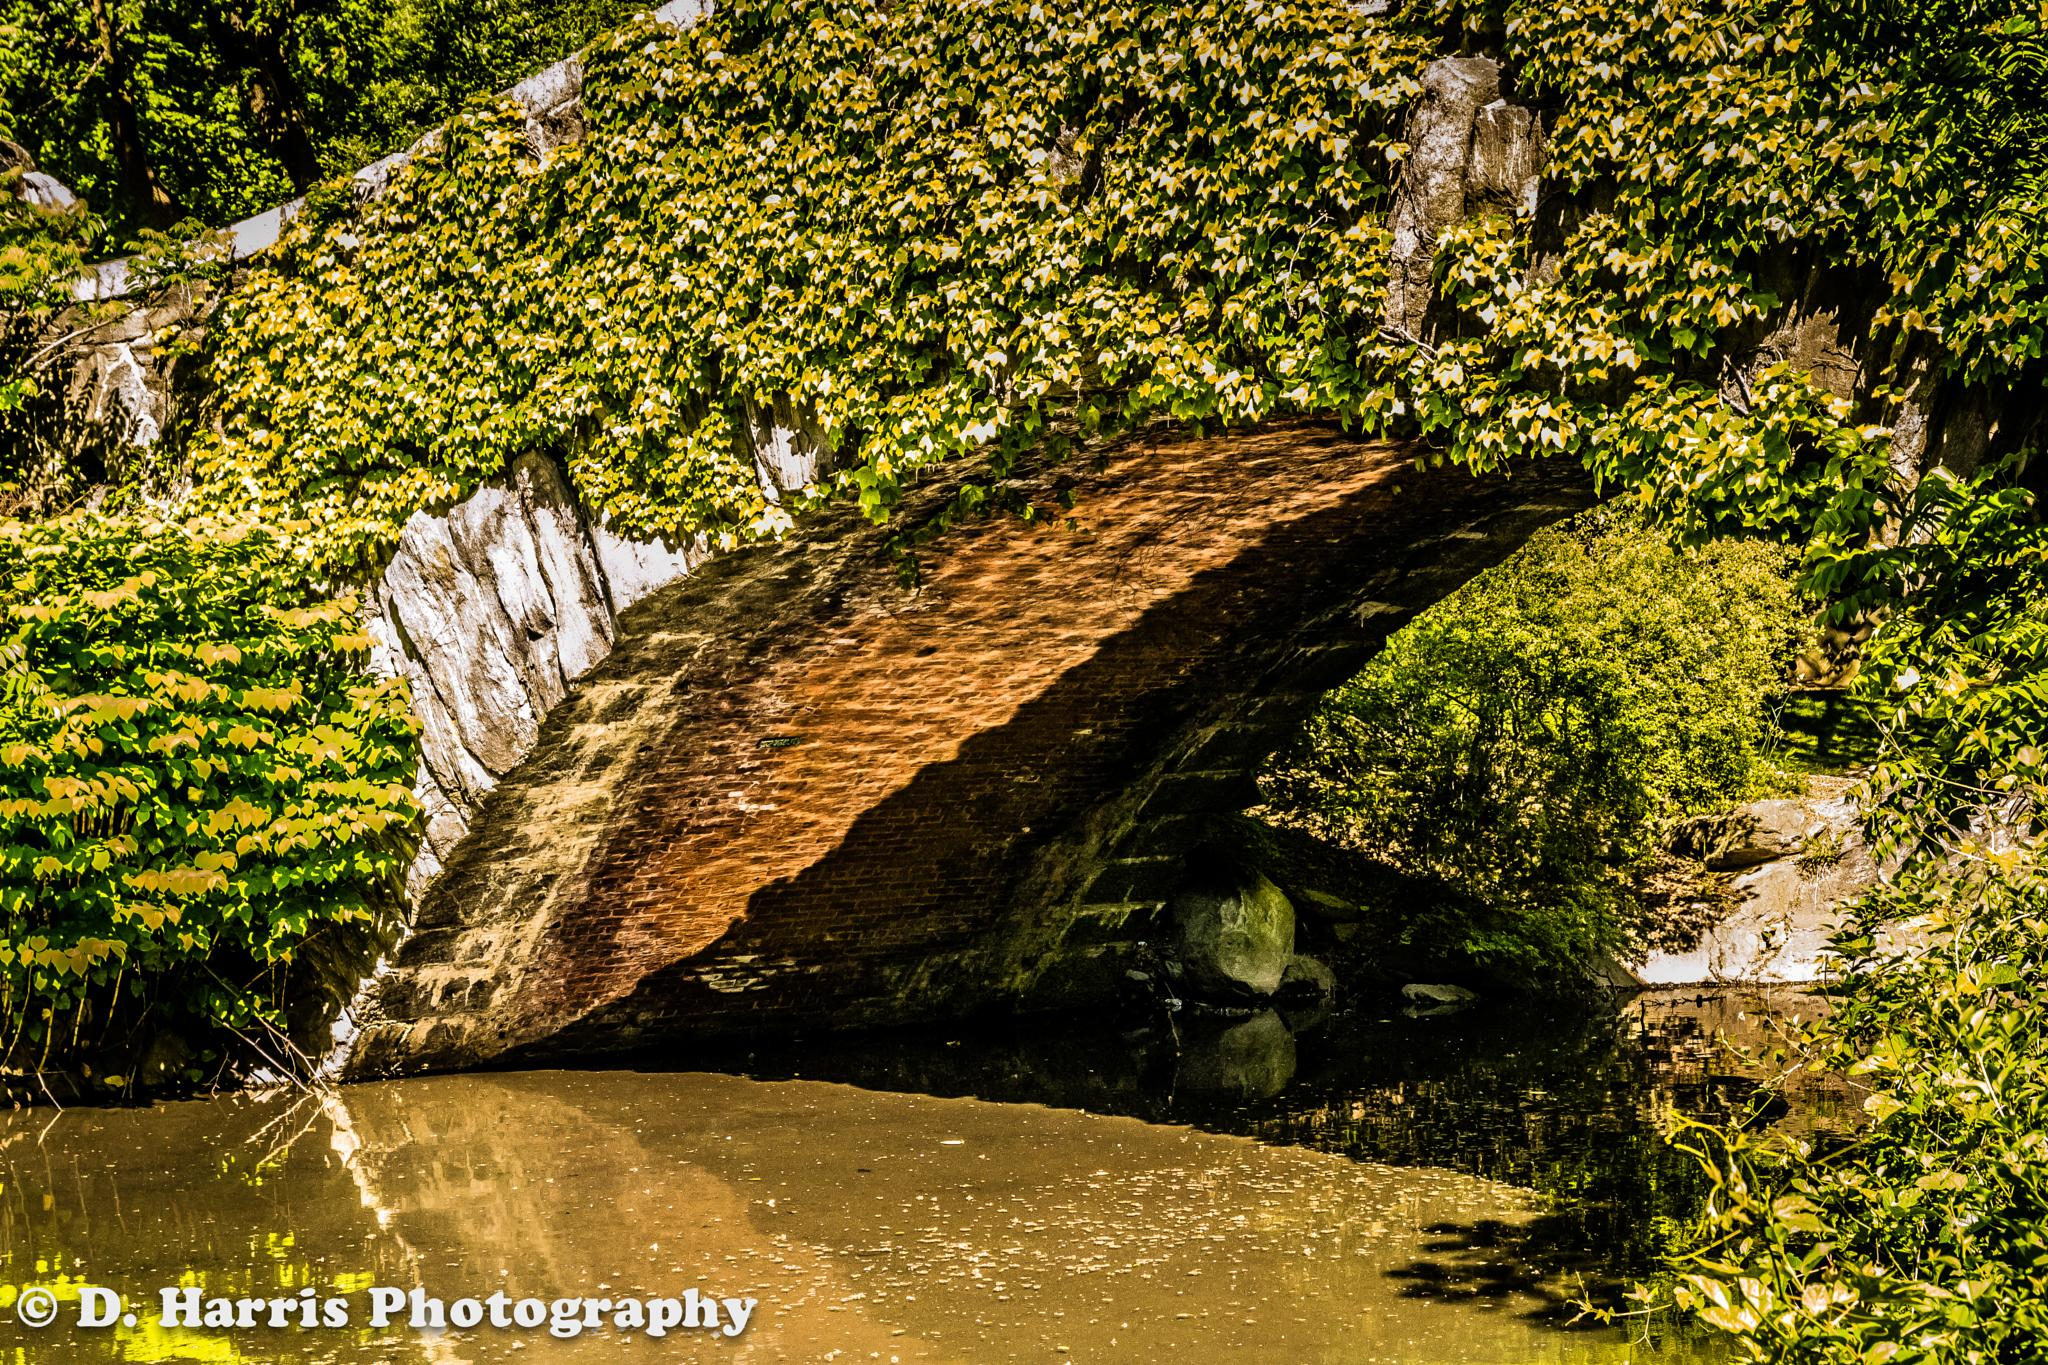 Bridge Over Troubled Waters (HDR) by Darryl Harris